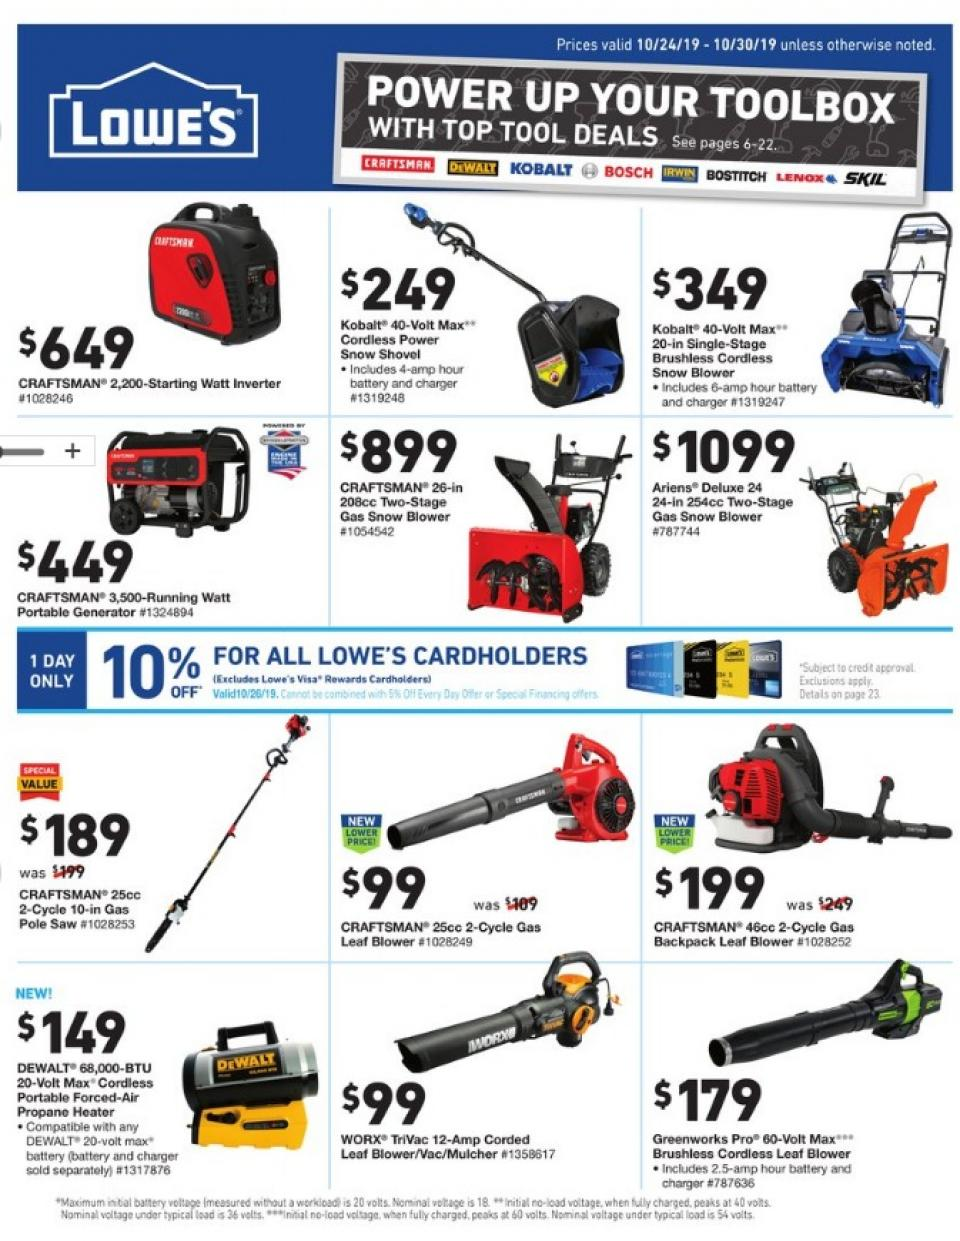 lowes tools sale ad valid from oct 24 30 2019